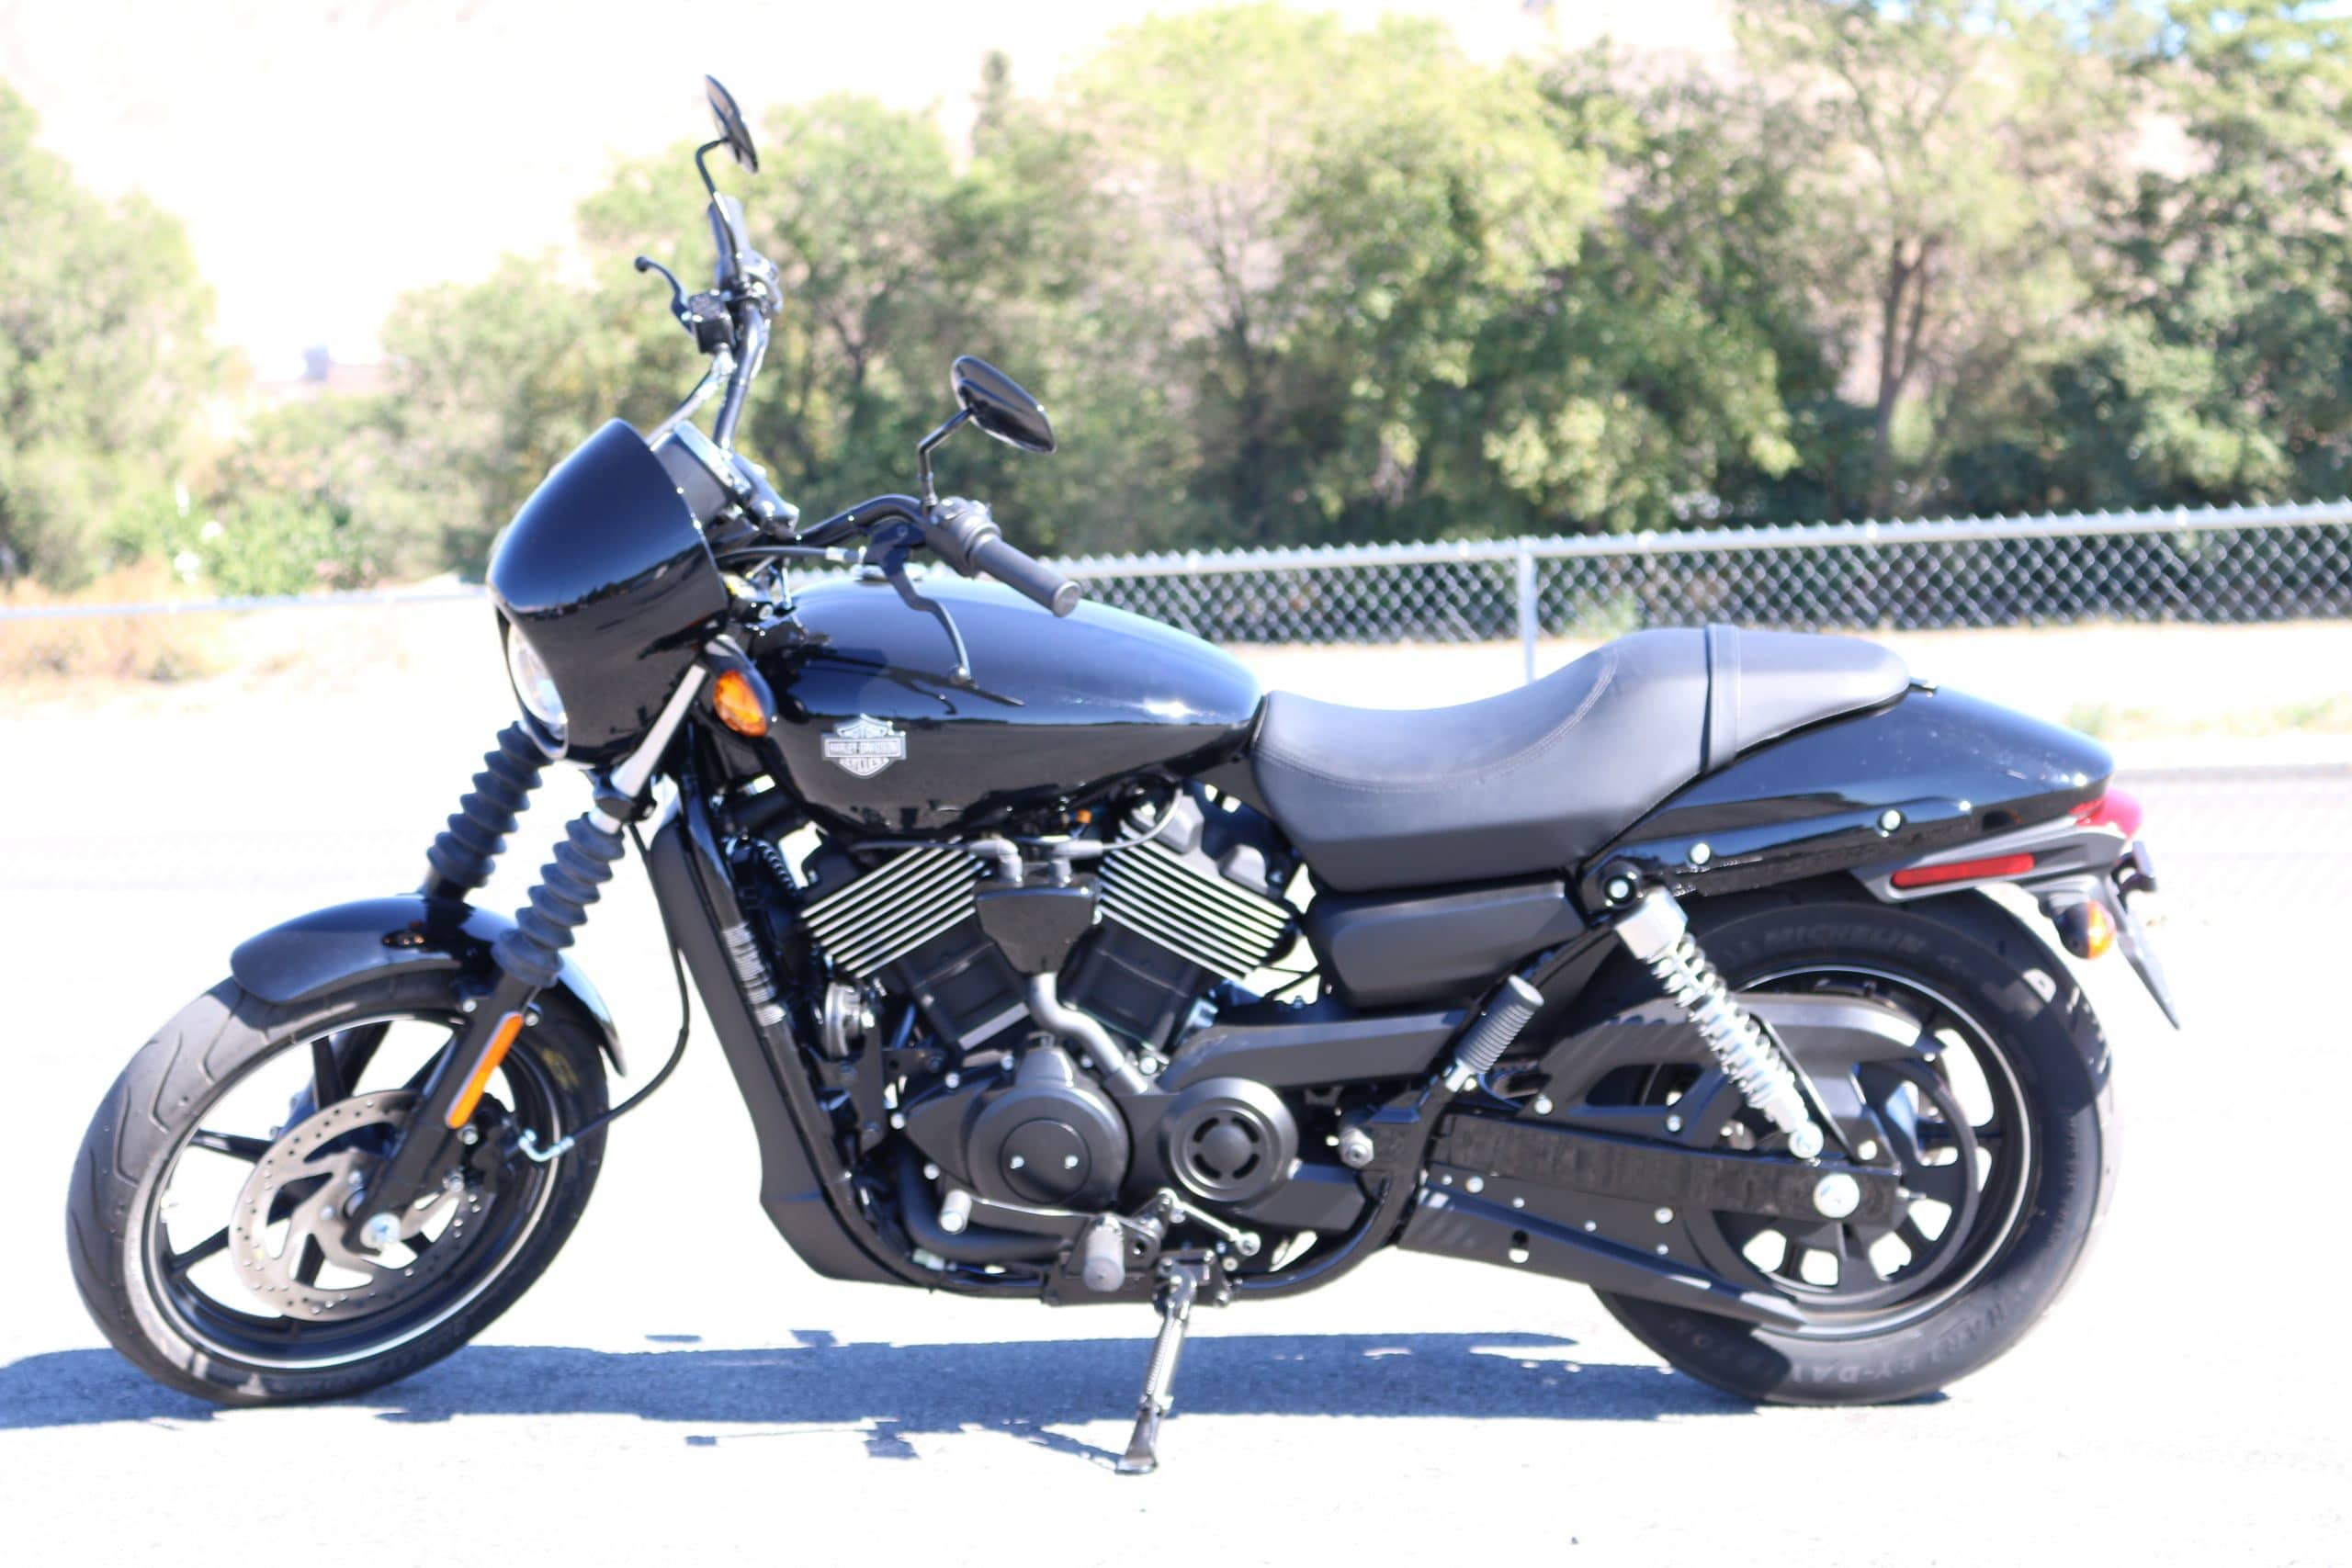 Harley-Davidson XL 1200T Superlow 2016